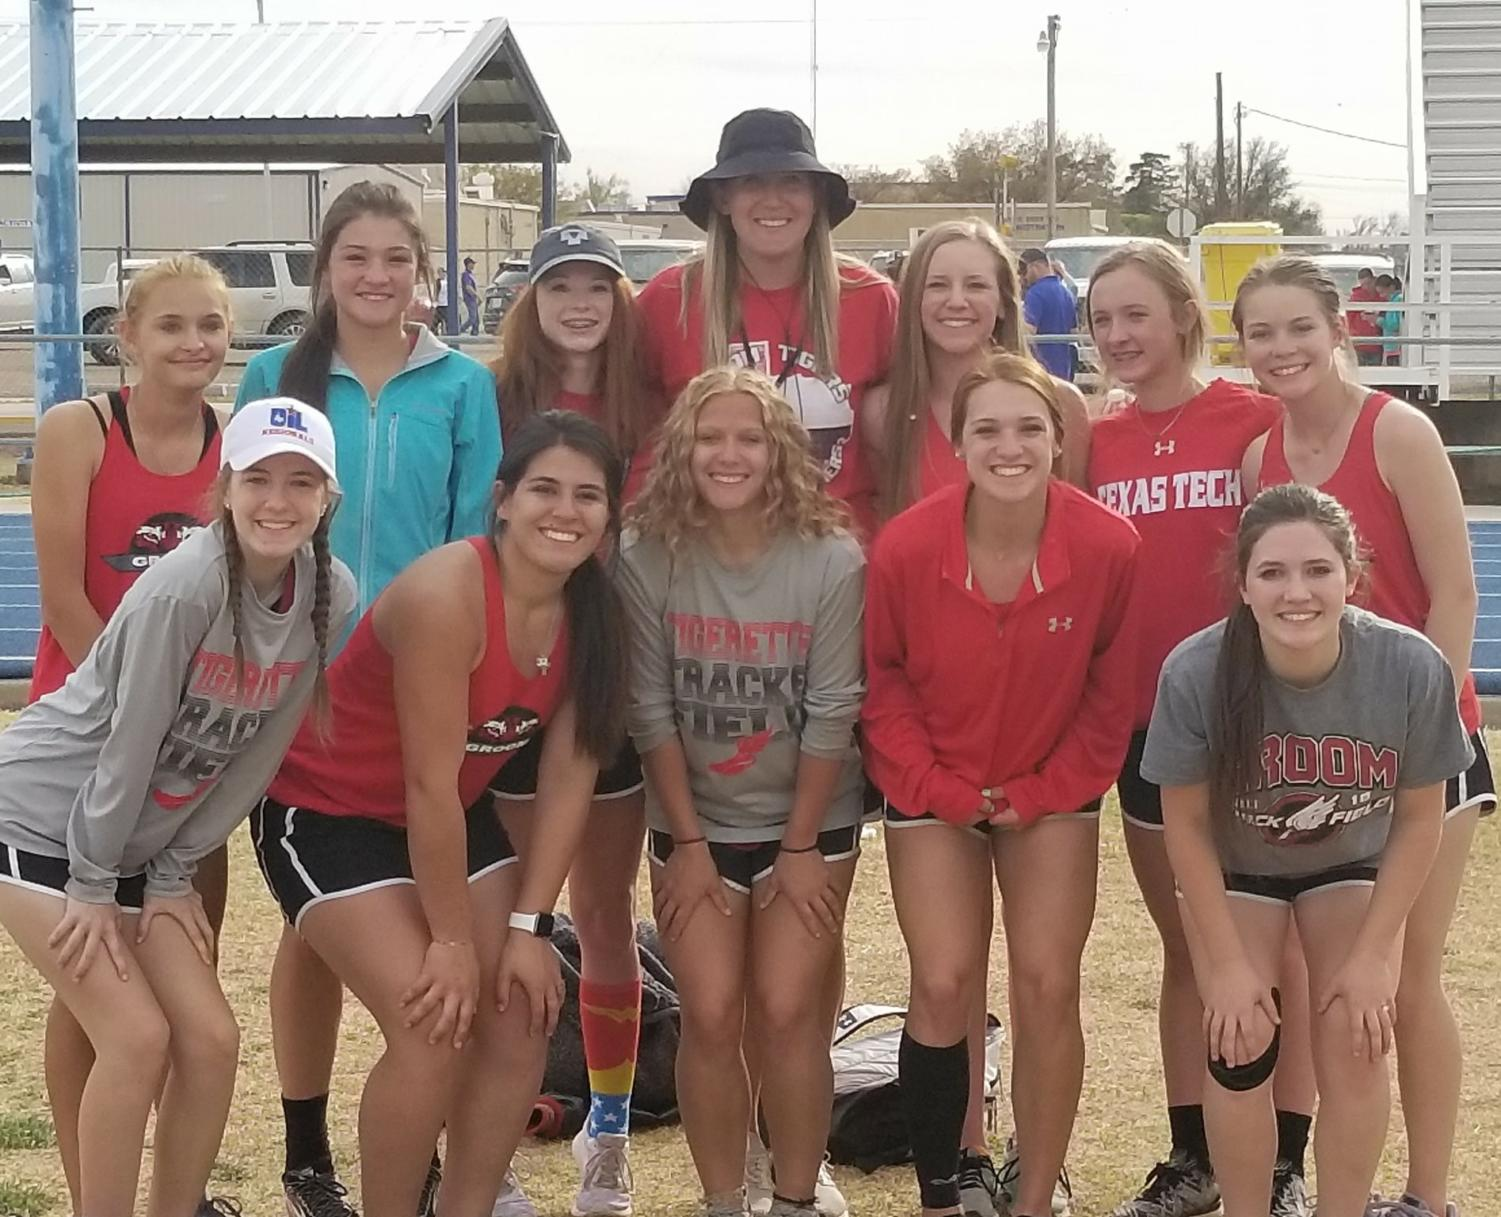 The girls track team takes a photo together after winning the meet. The team totaled 184 points giving them first place. Both the girls and the boys had many area qualifiers.